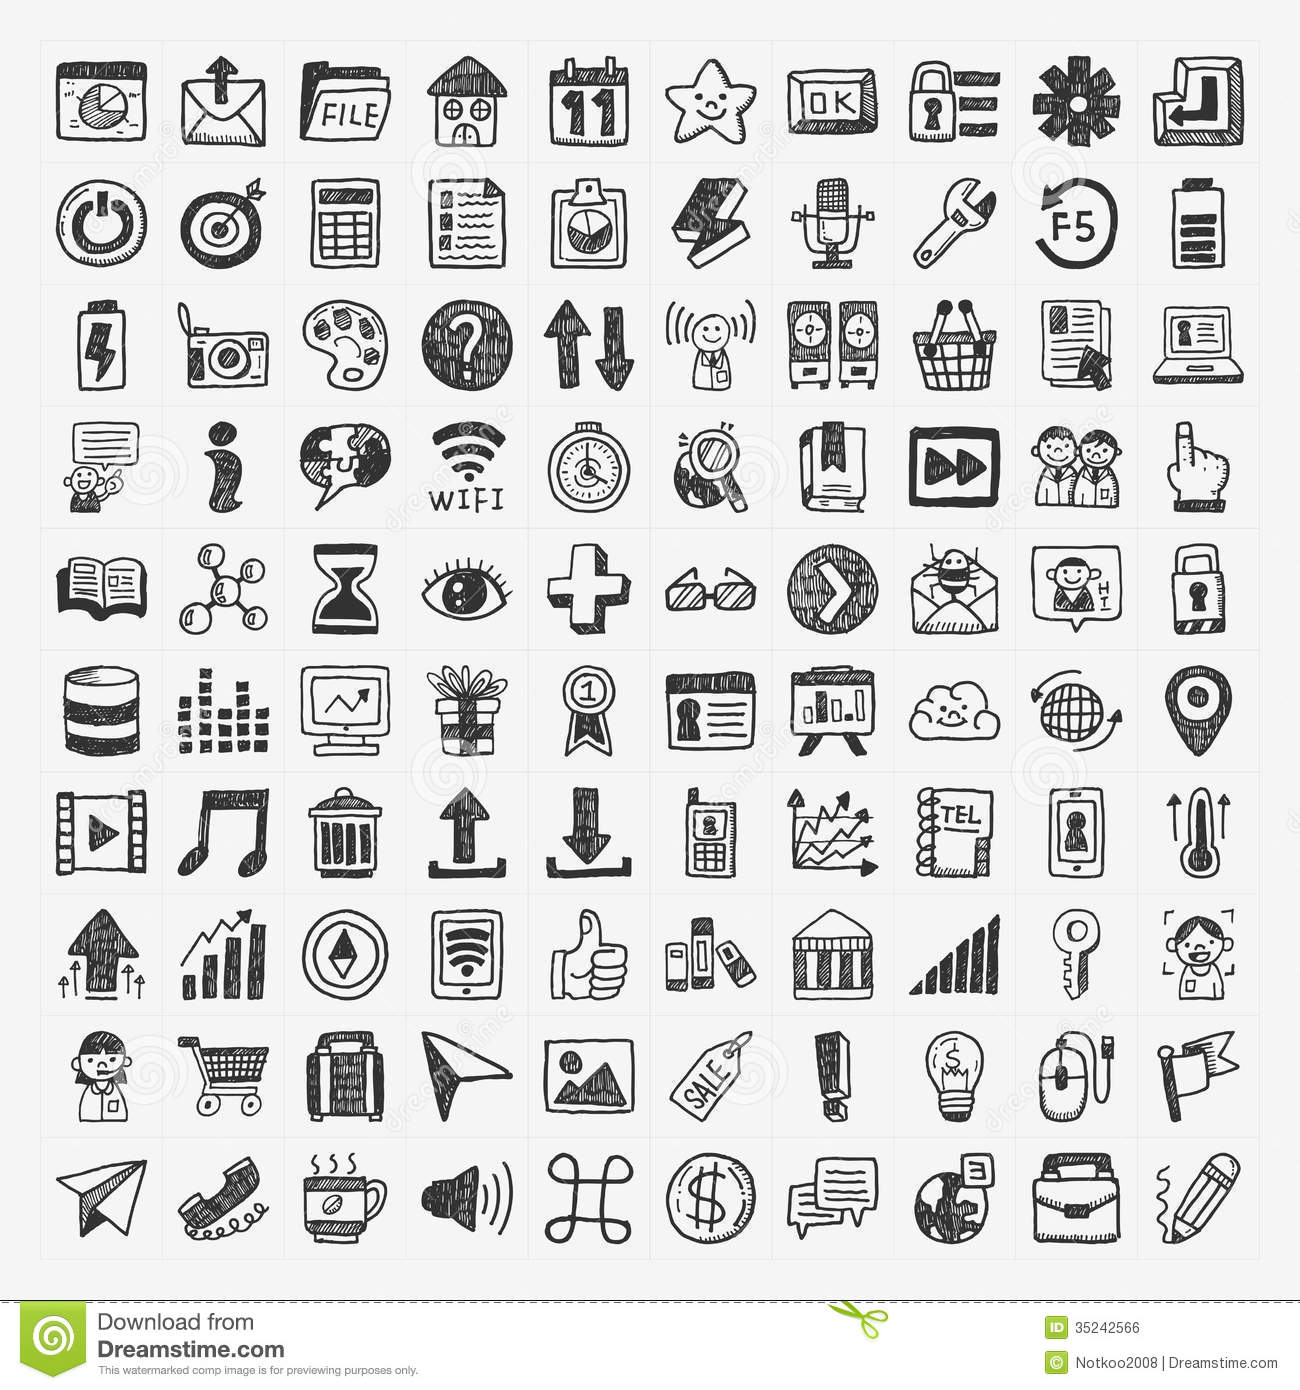 100 Doodle Web Icons Stock Vector Illustration Of Draft